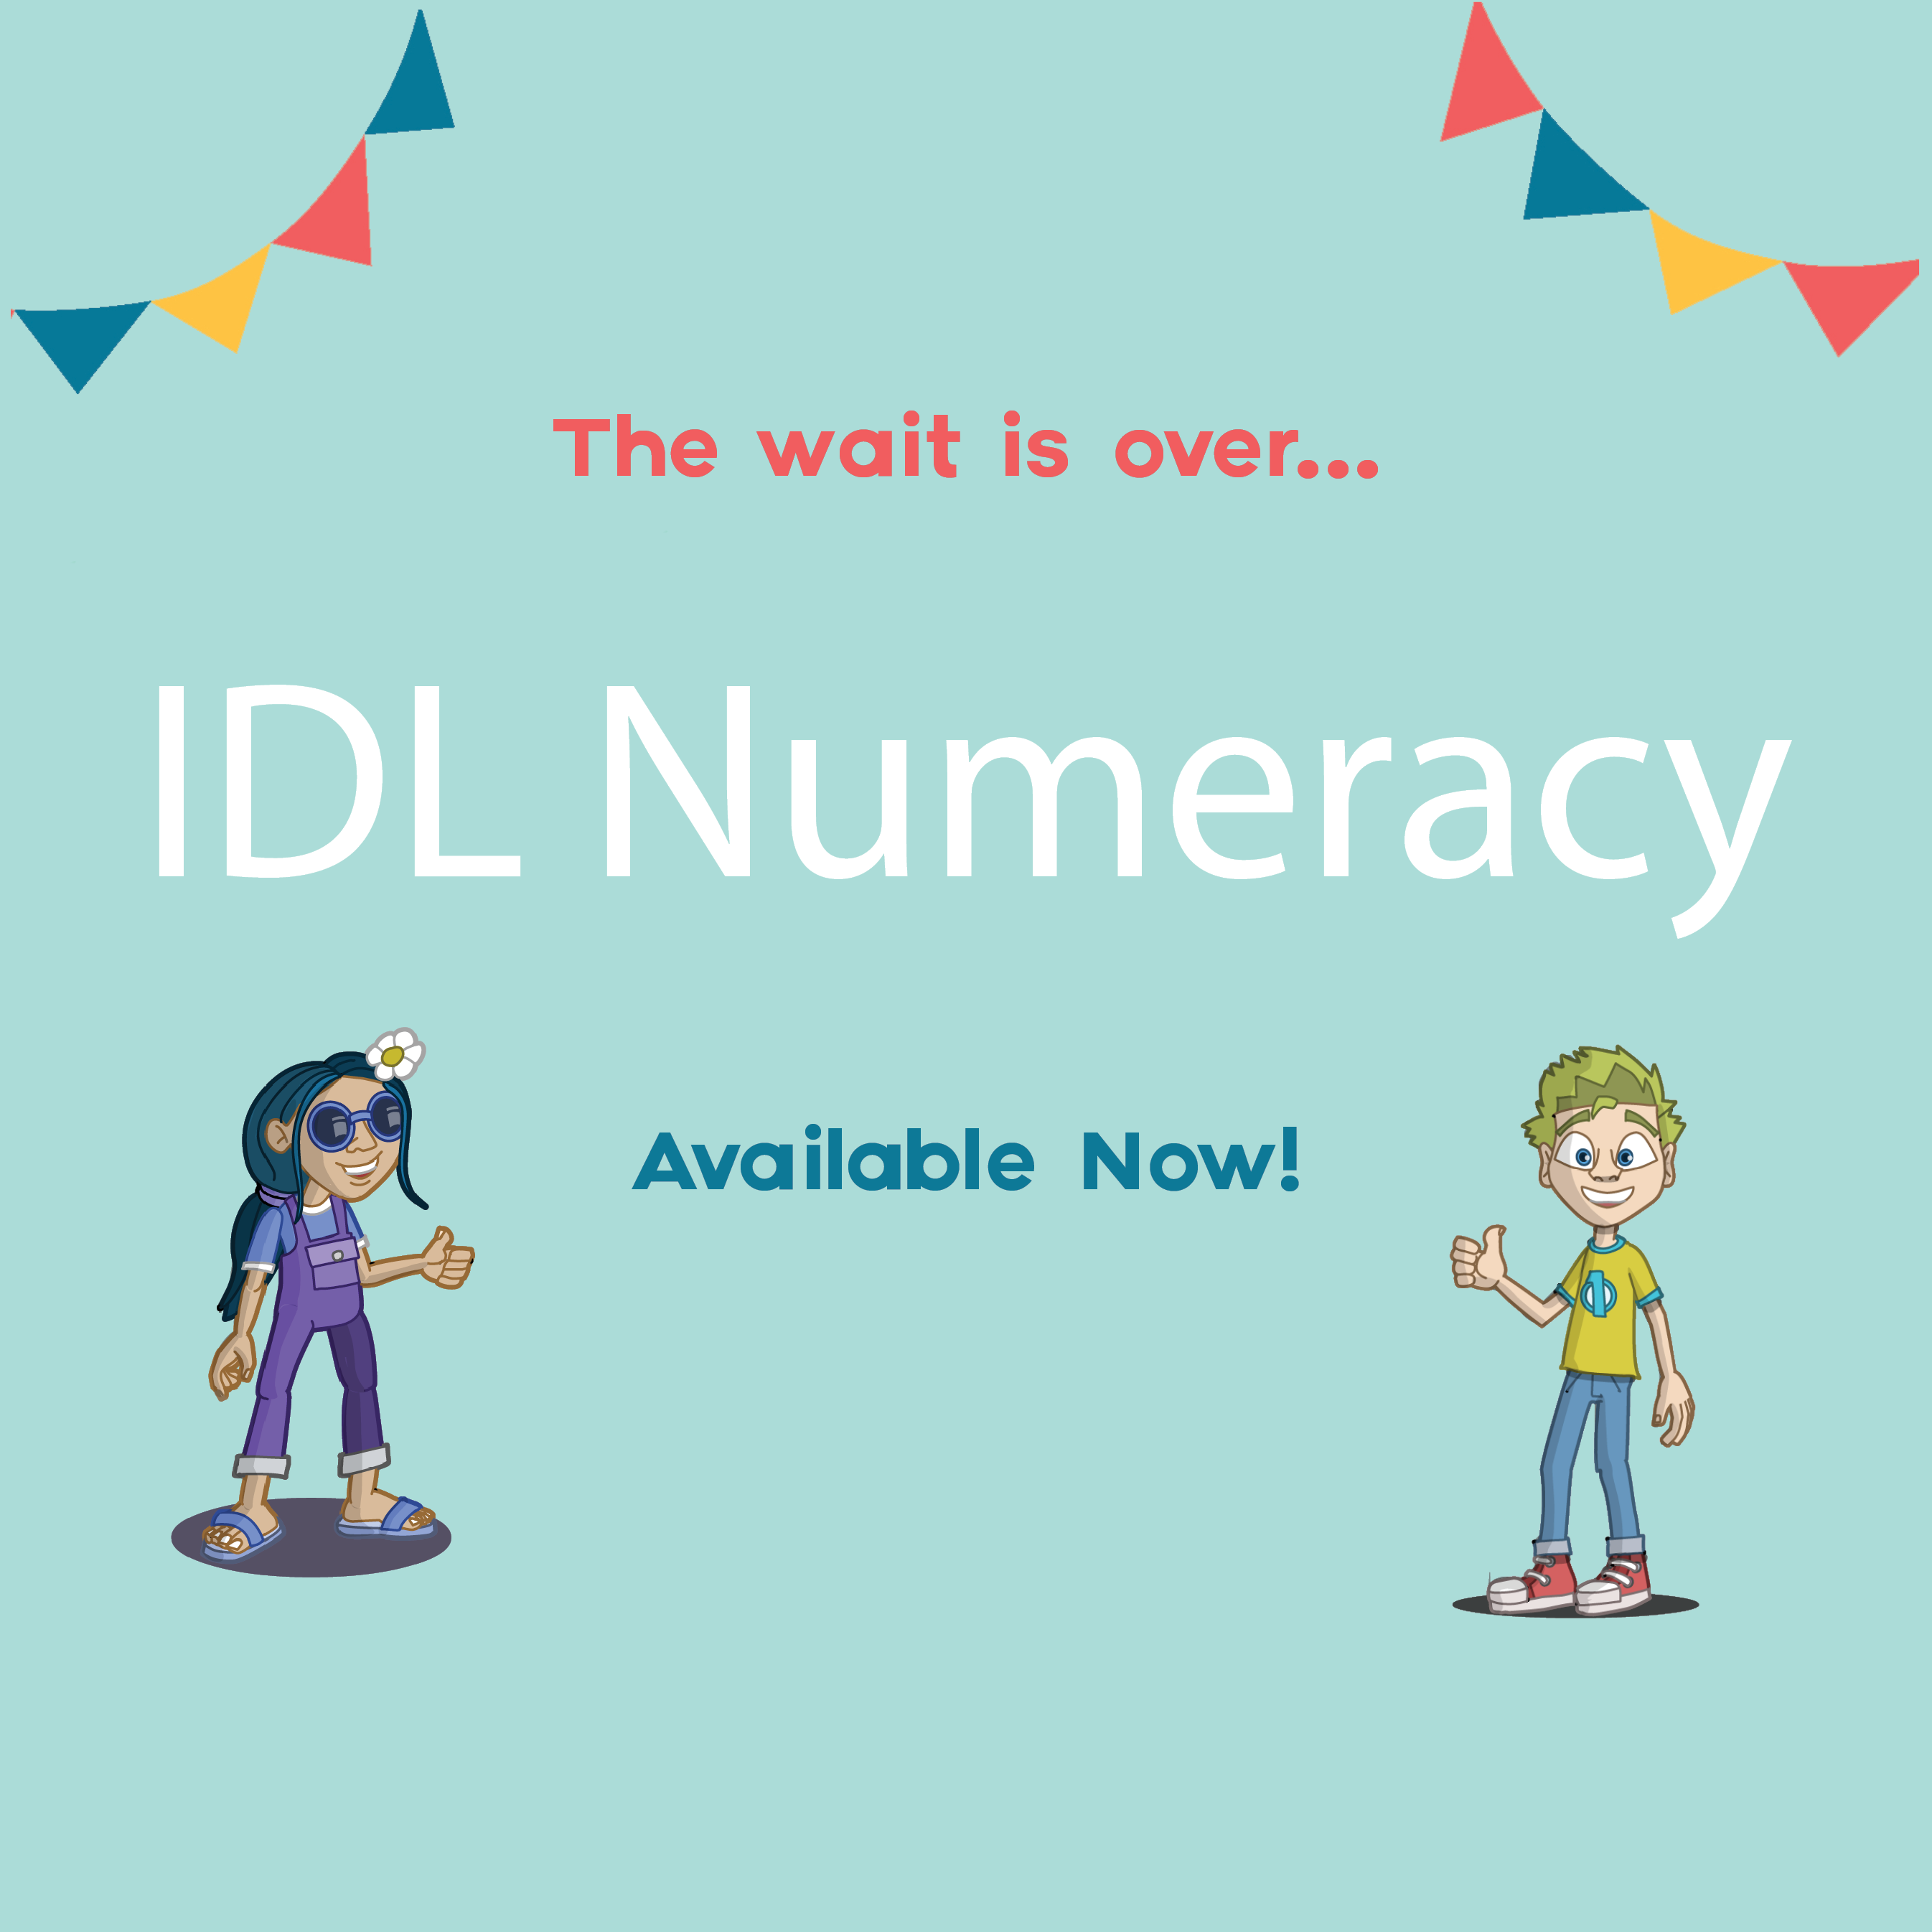 The wait is over! IDL Numeracy is here